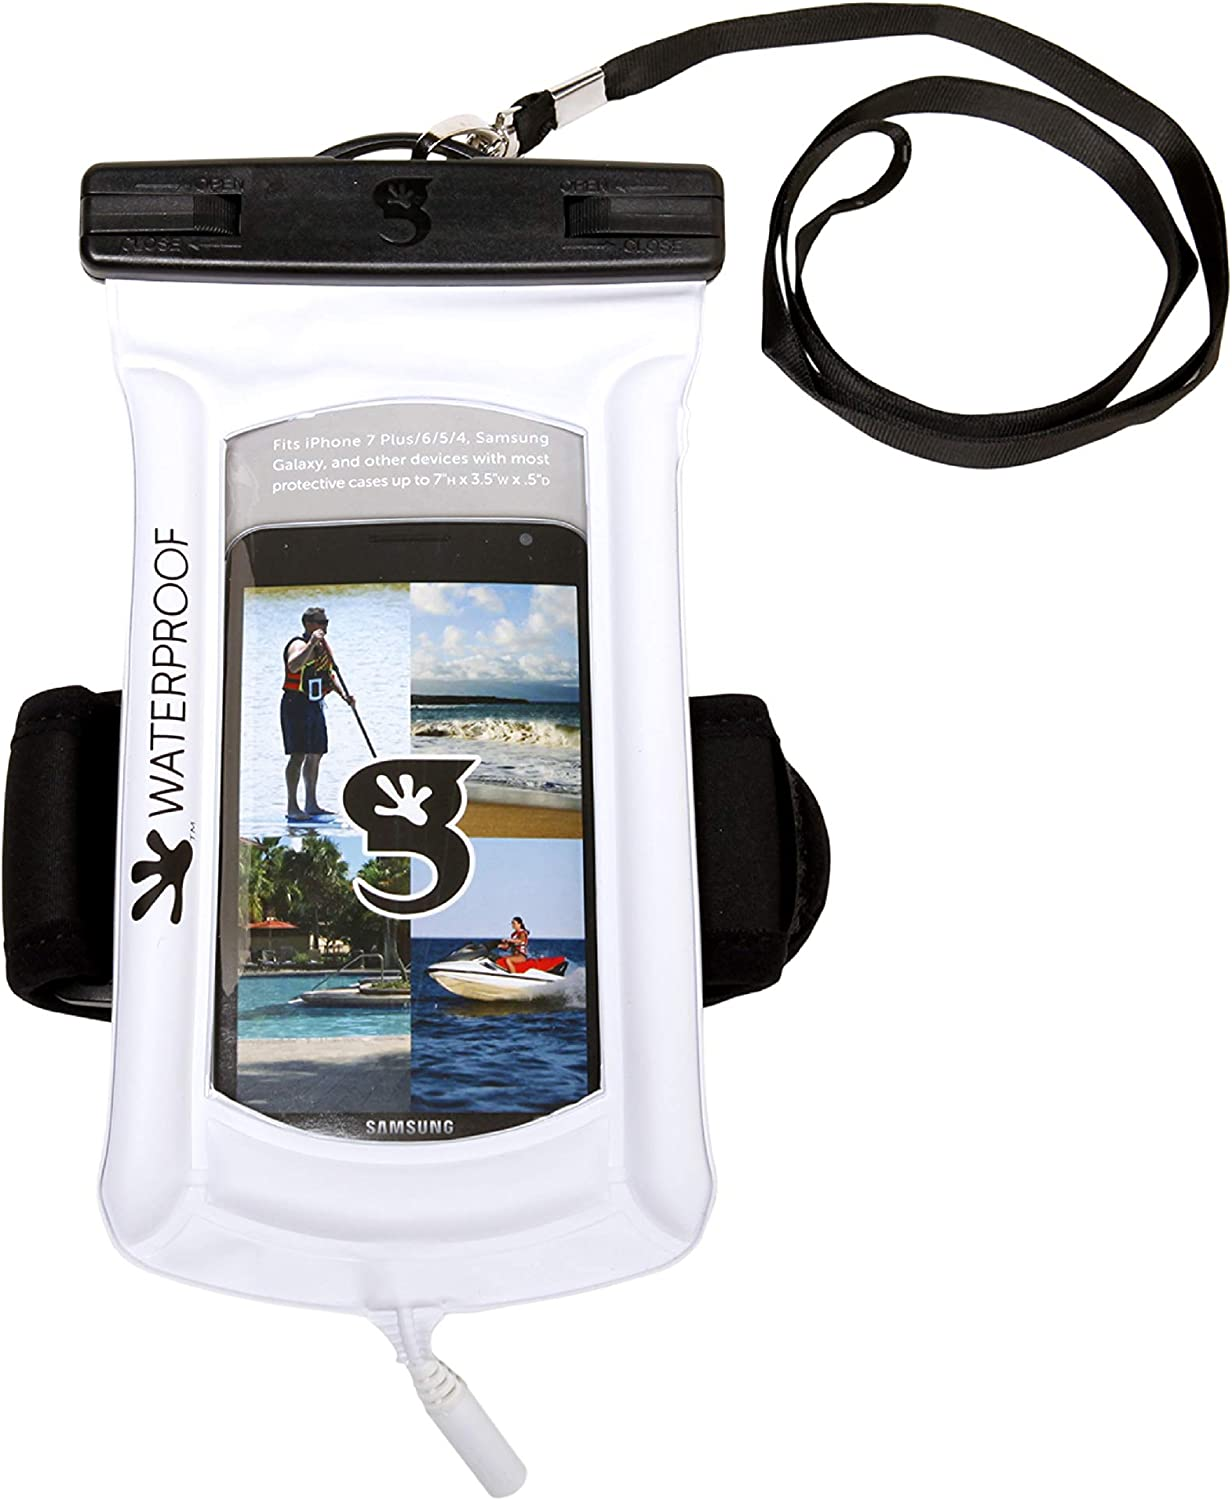 geckobrandsFloatPhoneDry Bag with Arm Band& Audio Port -Waterproof&FloatingPhonePouch– Fits Most iPhone and Samsung Galaxy Models